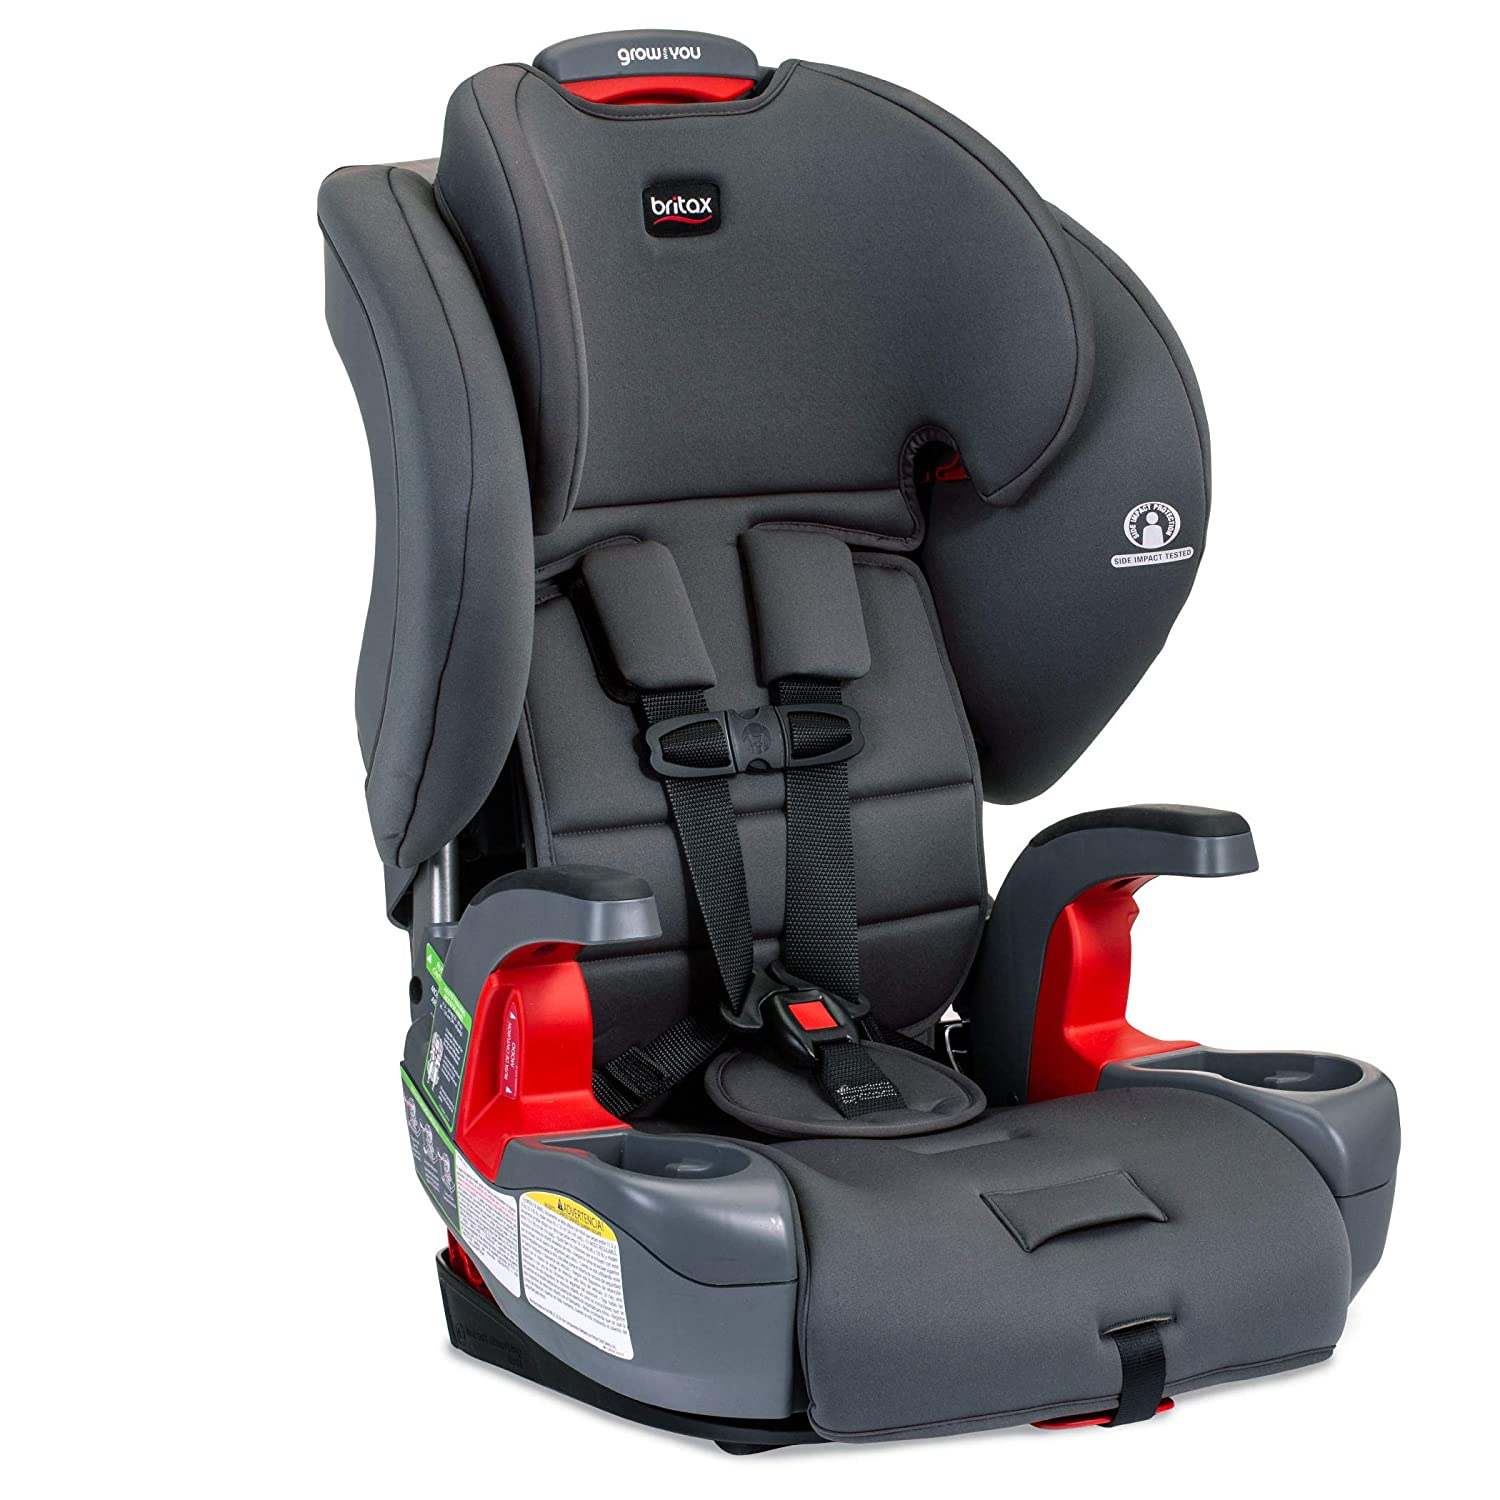 Top 9 Best Car Seat For Toddlers (2020 Reviews & Buying Guide) 6